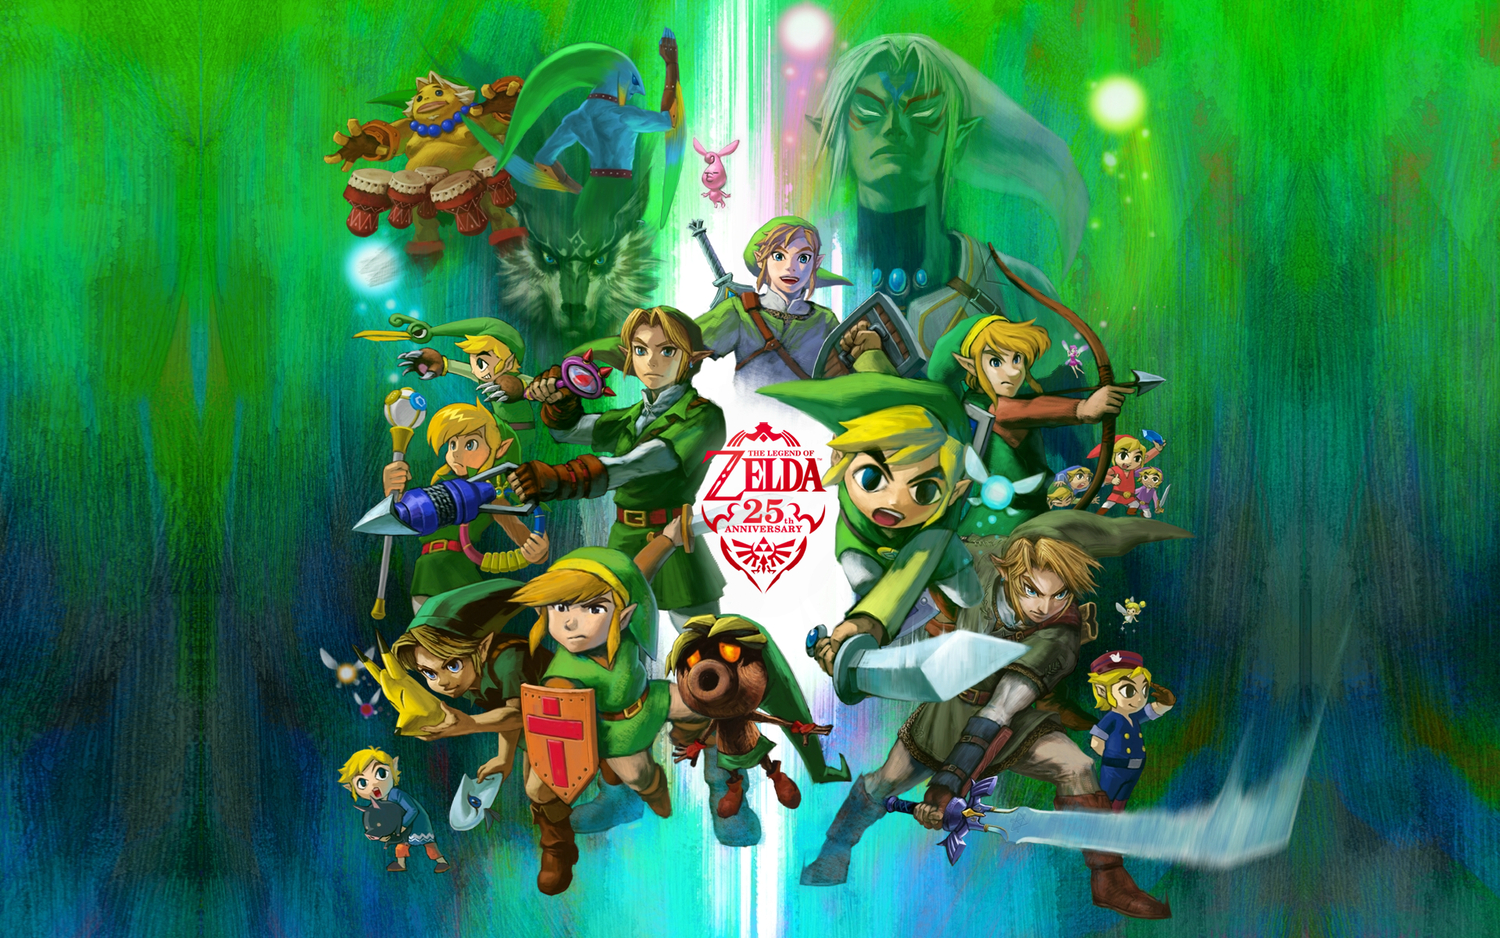 New TV Serie for The Legend of Zelda coming on Netflix